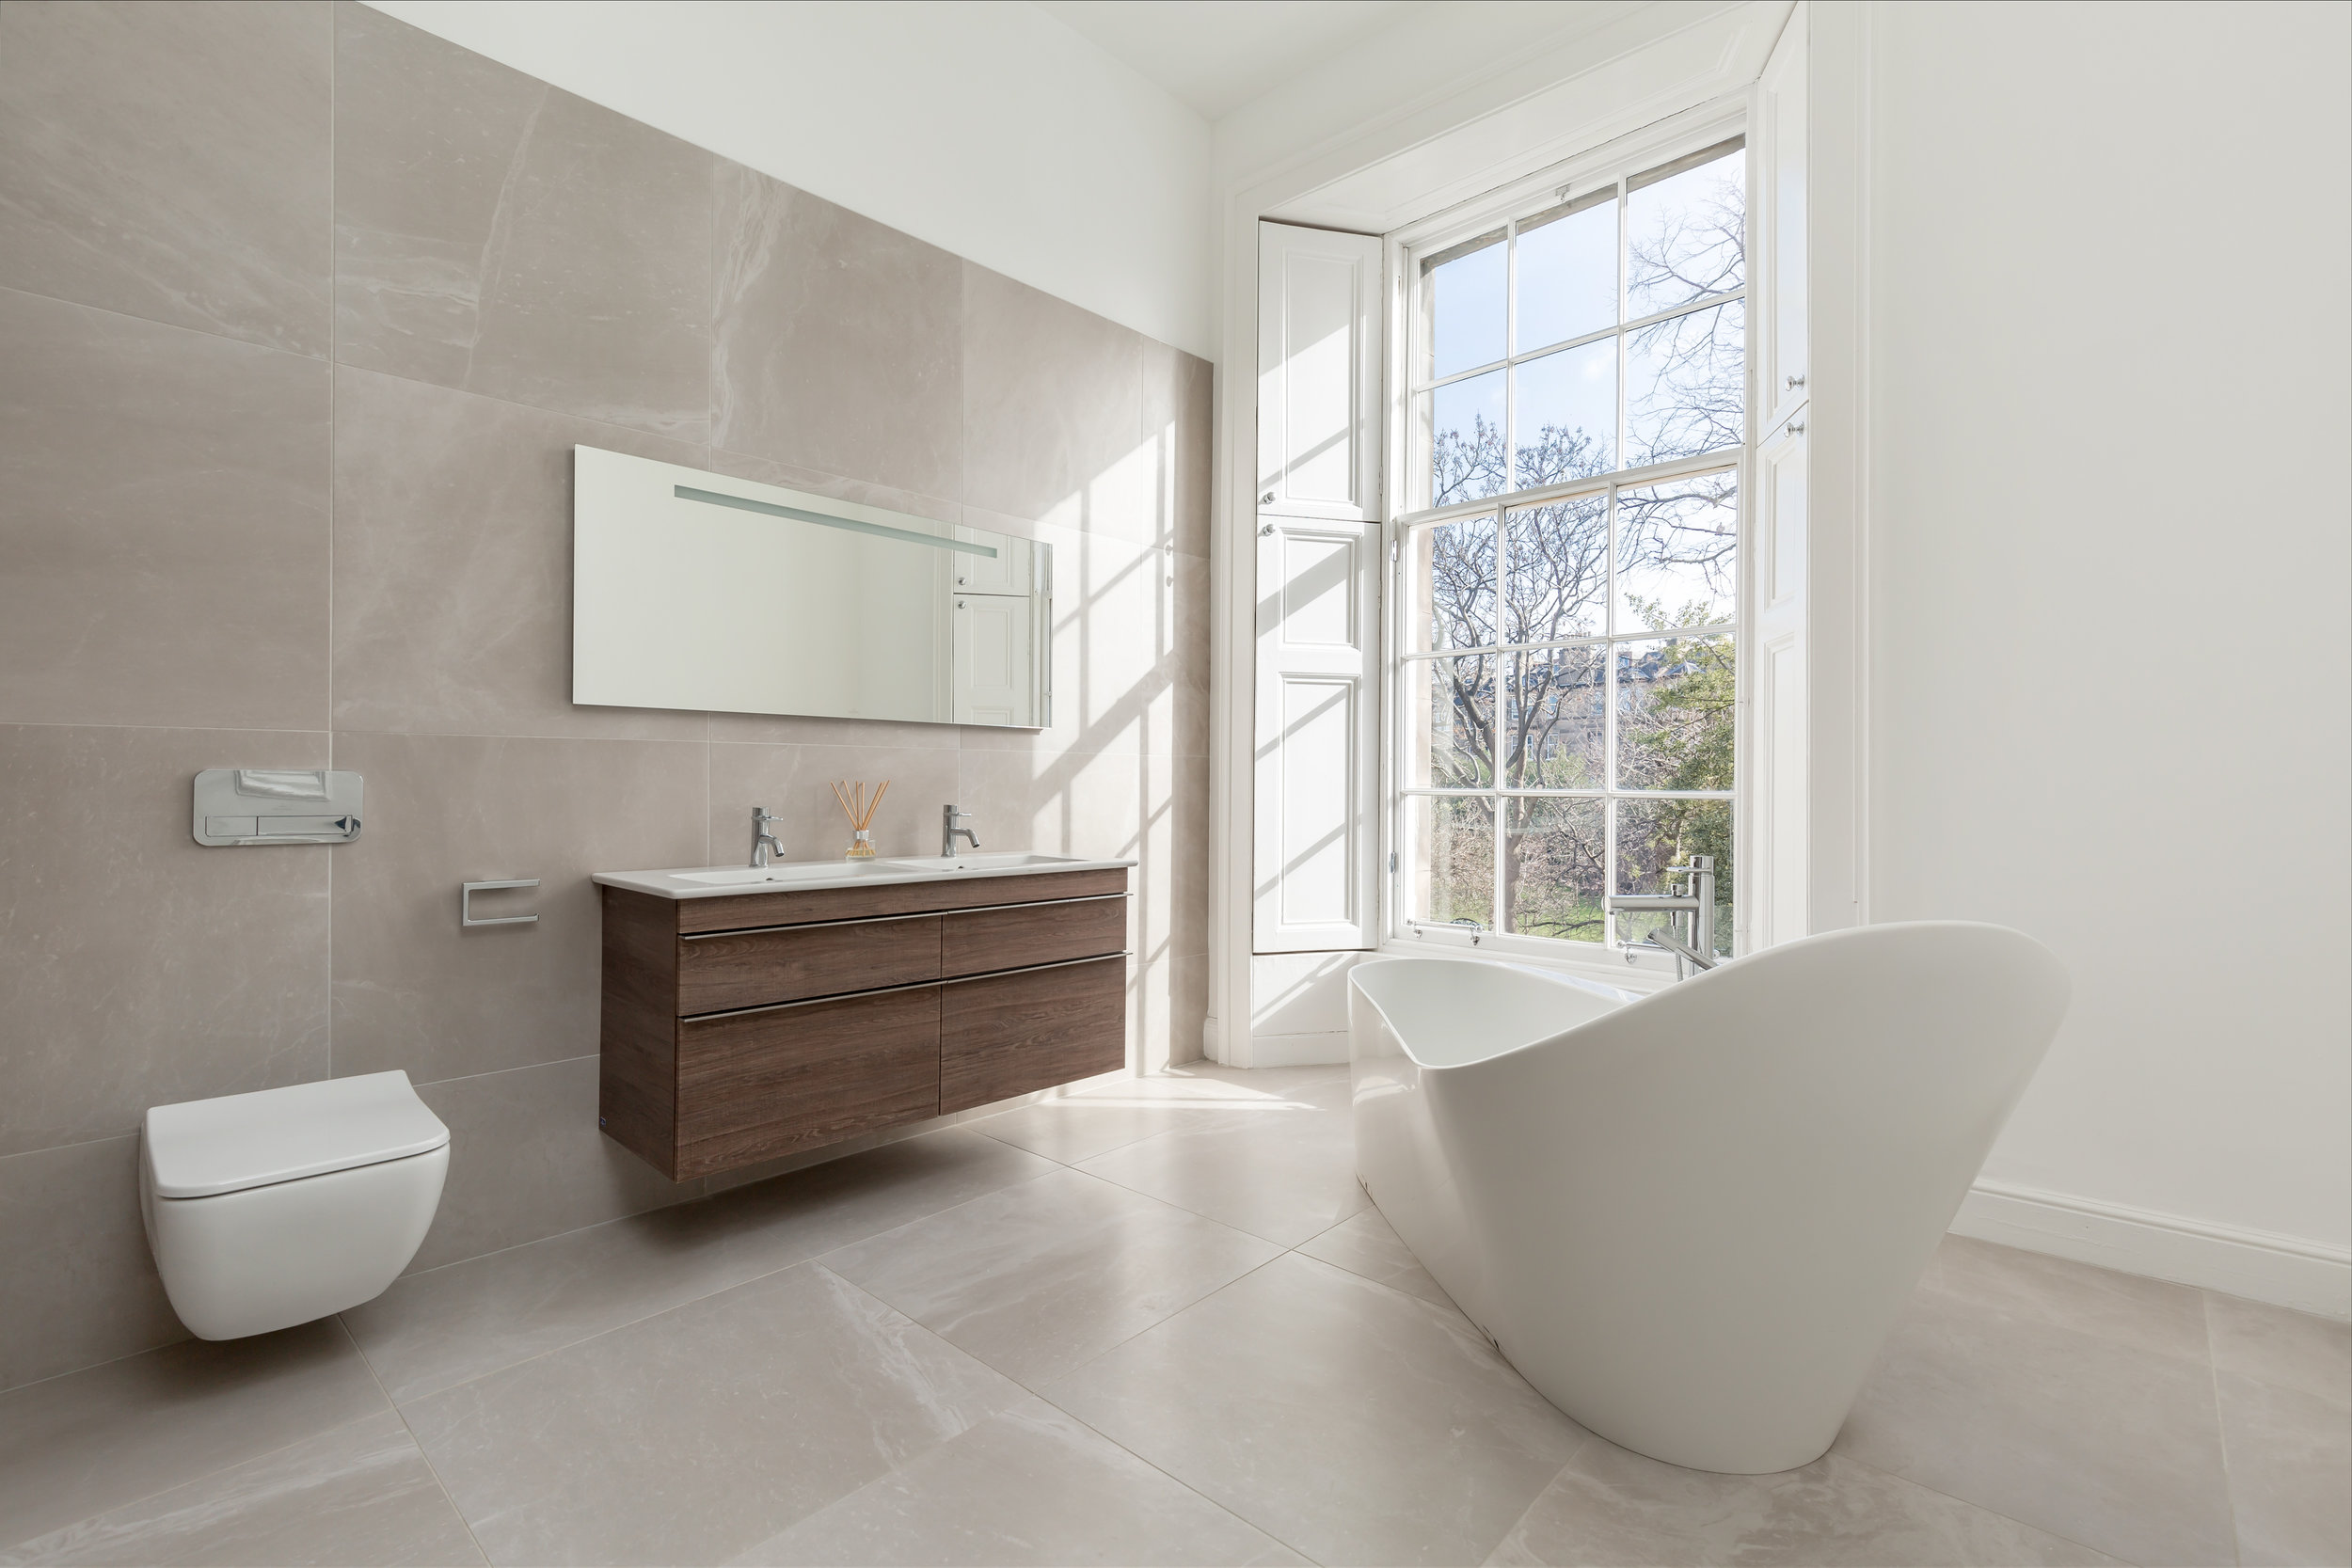 Luxury - Utilising light and space, together with our design flair we will create your new wellness area - turning an expected space into an exceptional space.